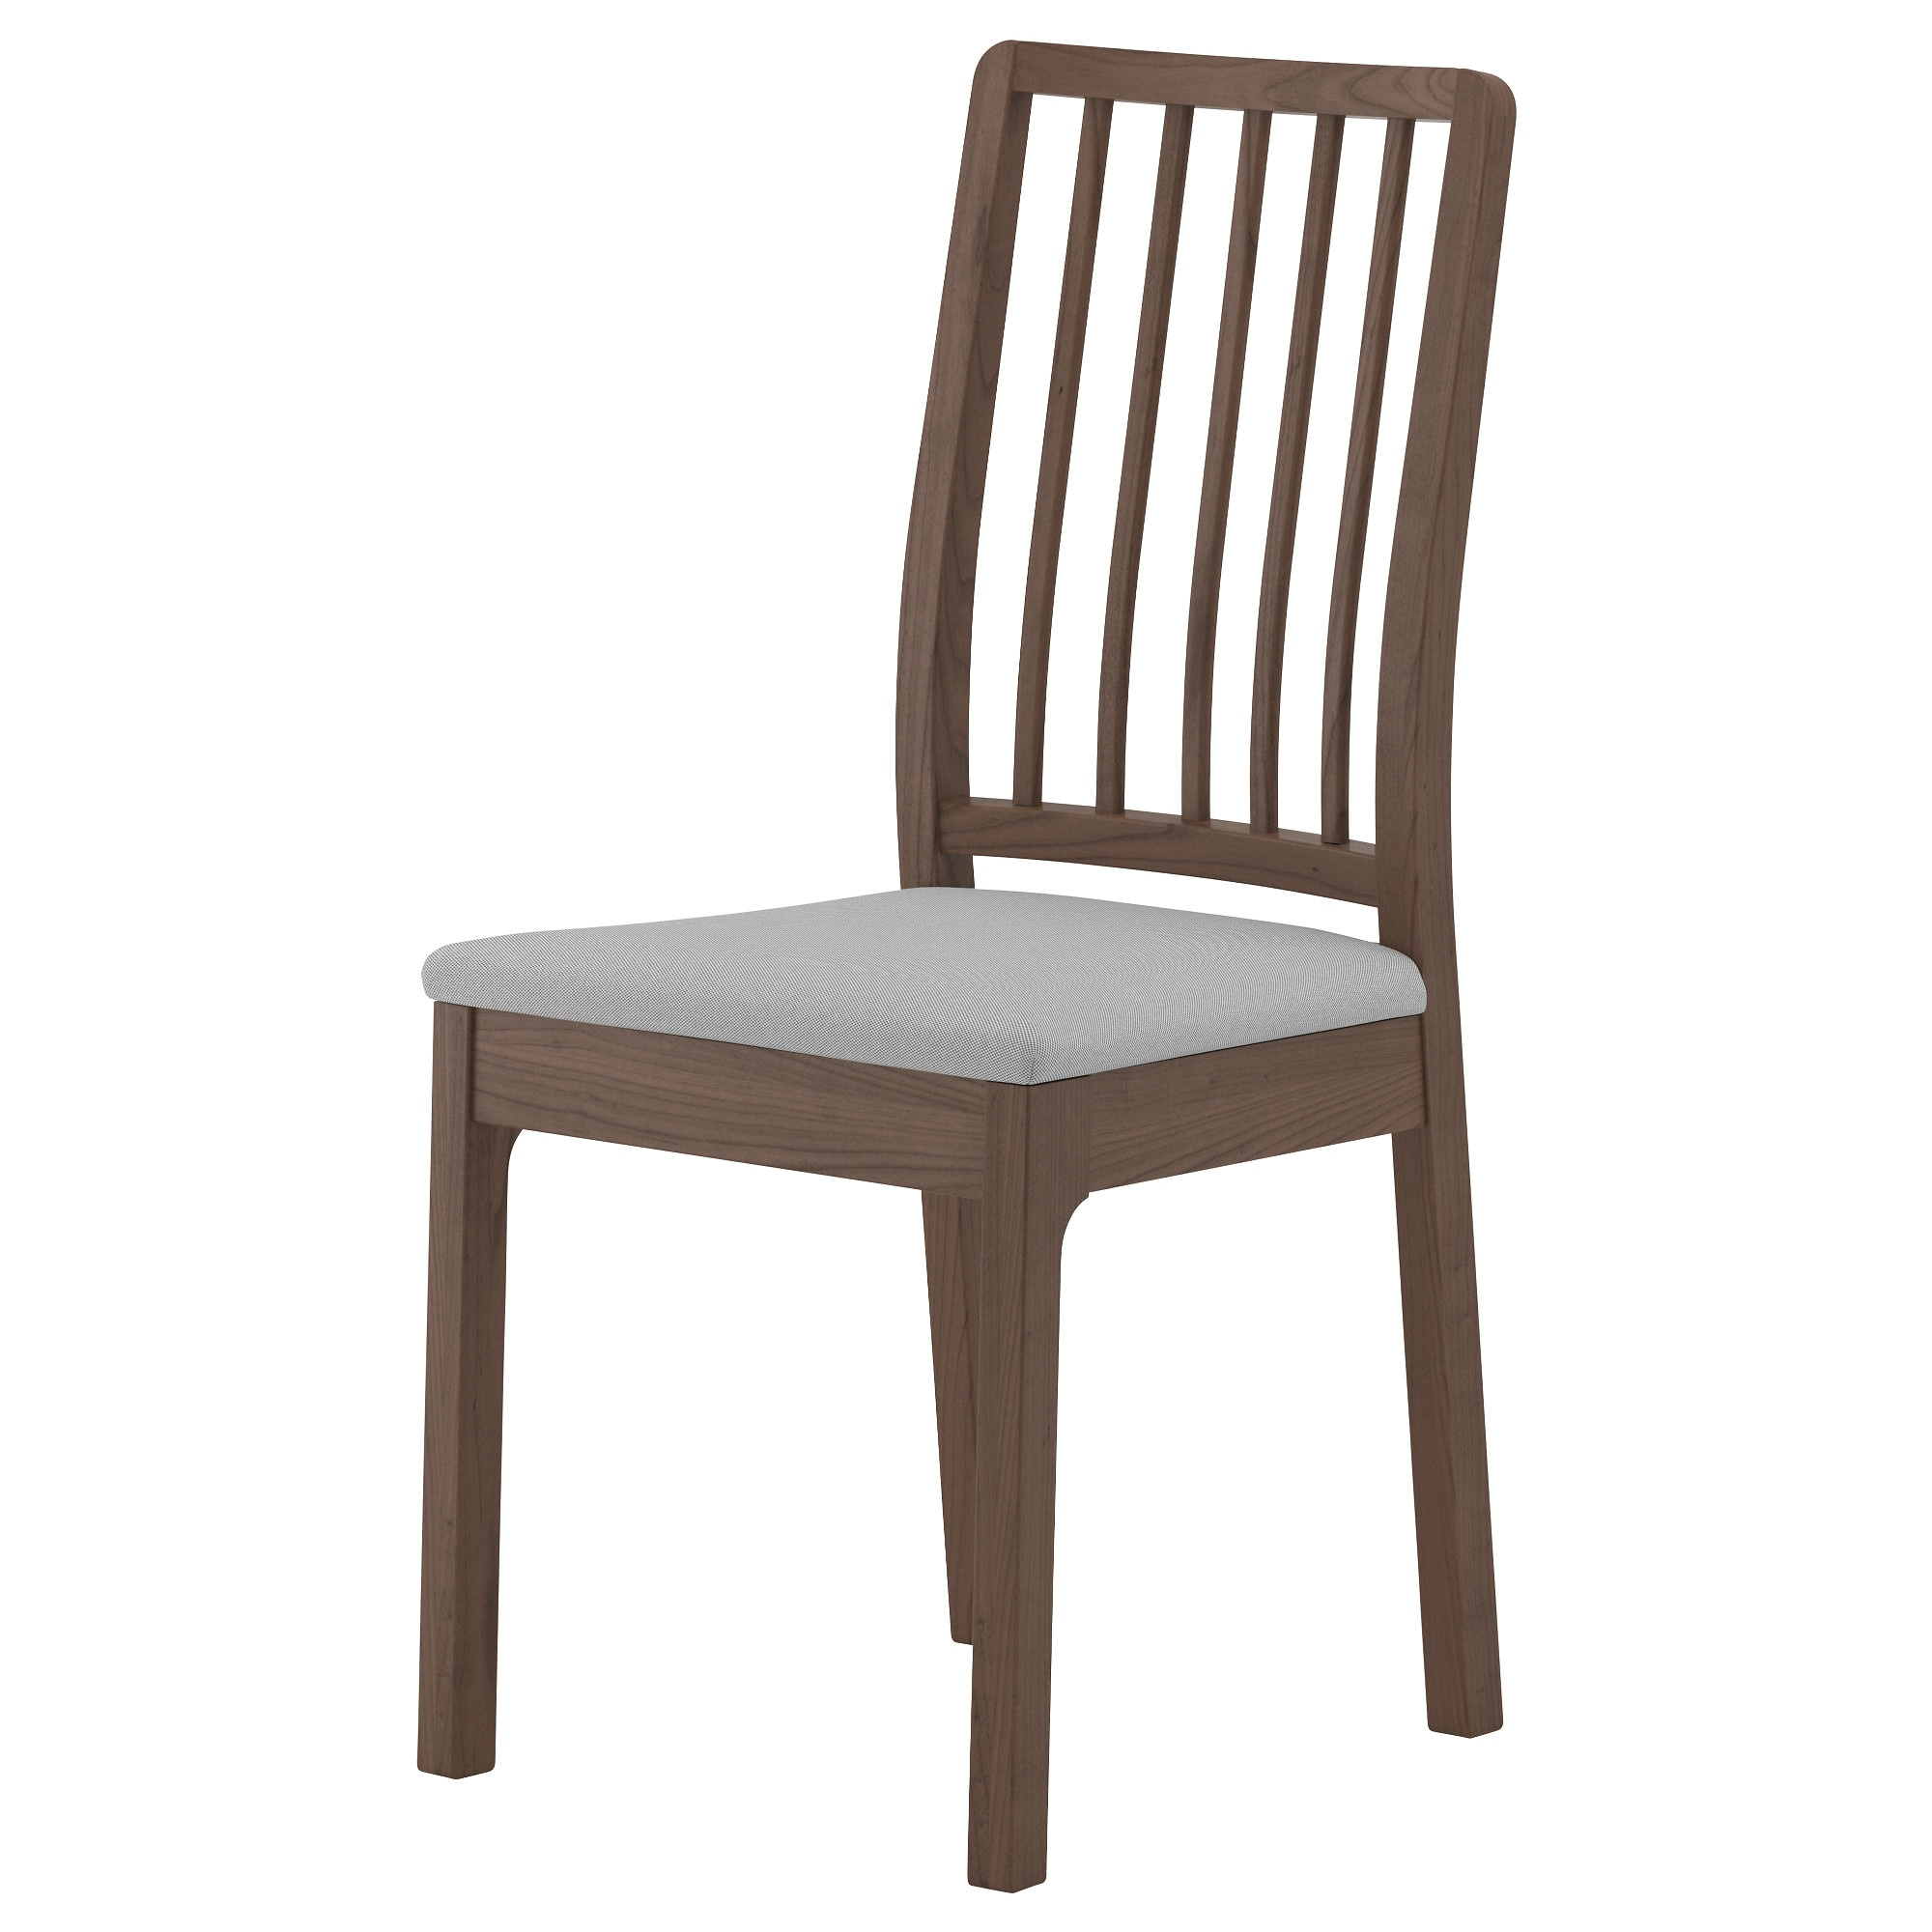 urban loft northern home furniture. Chair. Inter Ikea Systems B.v. 1999 - 2018 | Privacy Policy Chair I Urban Loft Northern Home Furniture O